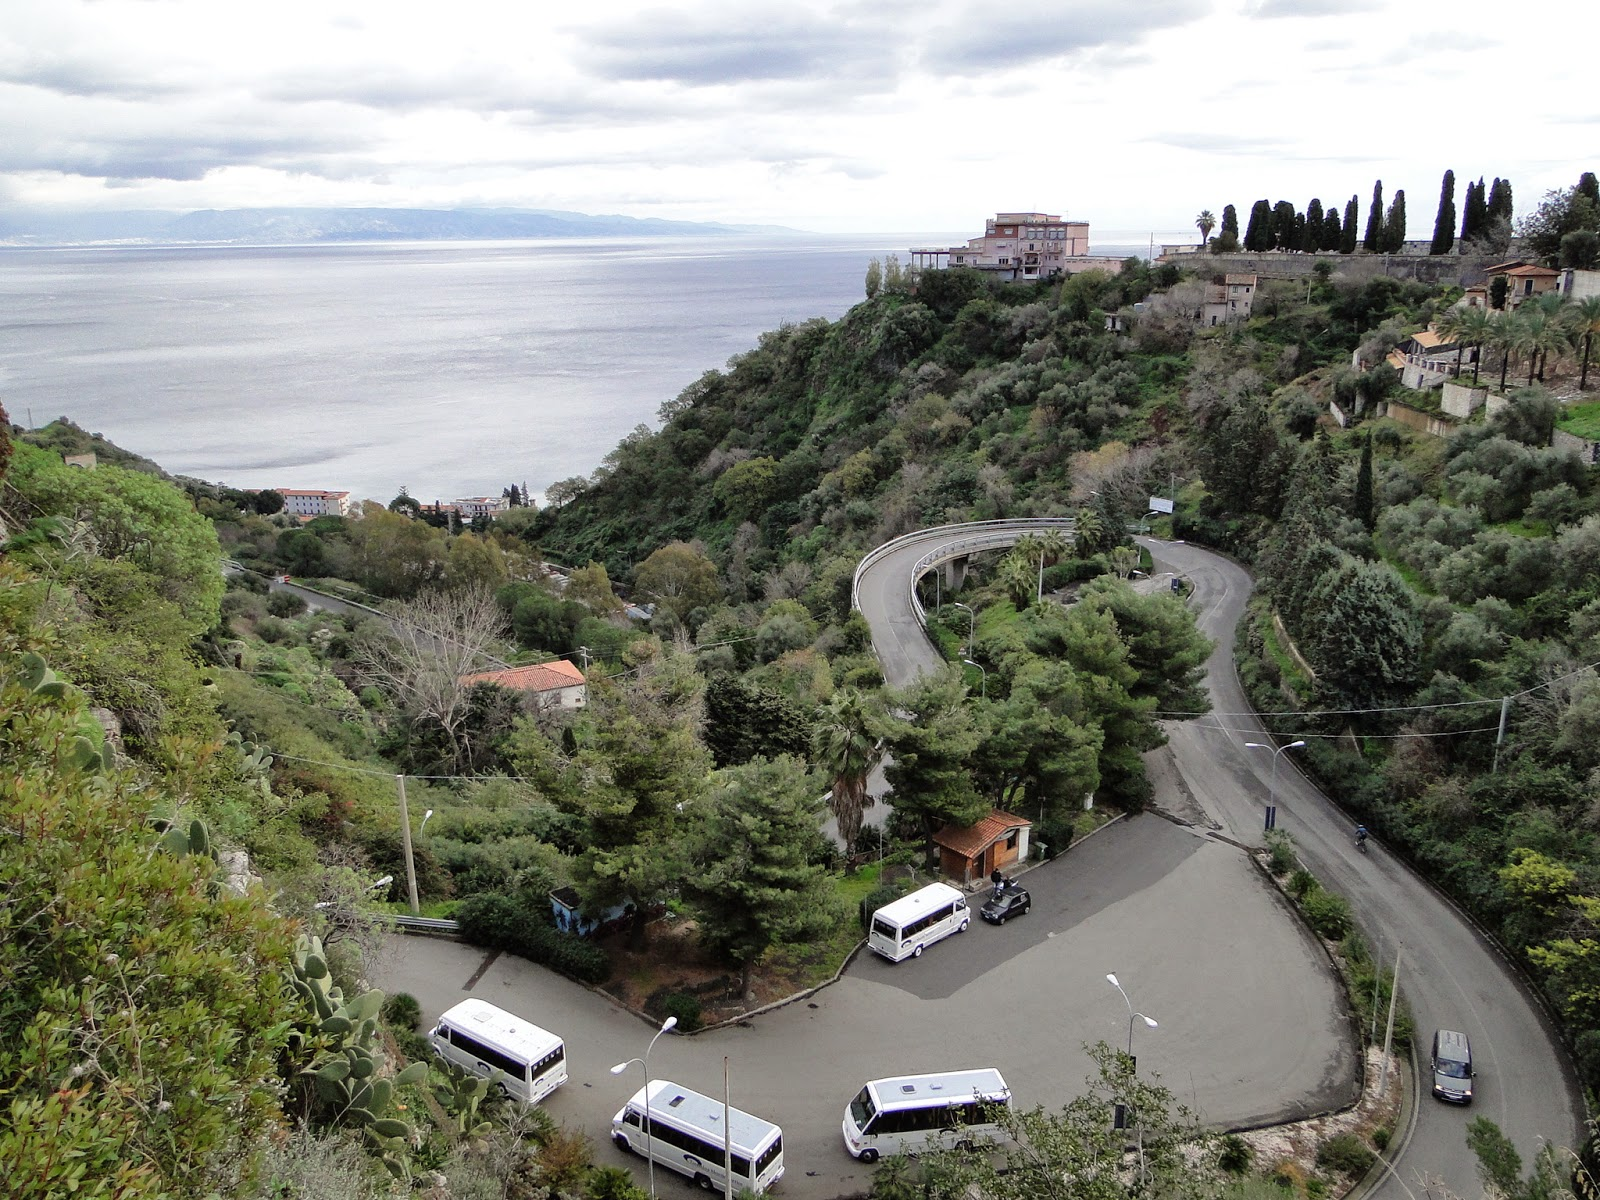 Terrazza Angelo Taormina Italy A Traveling Foodie S